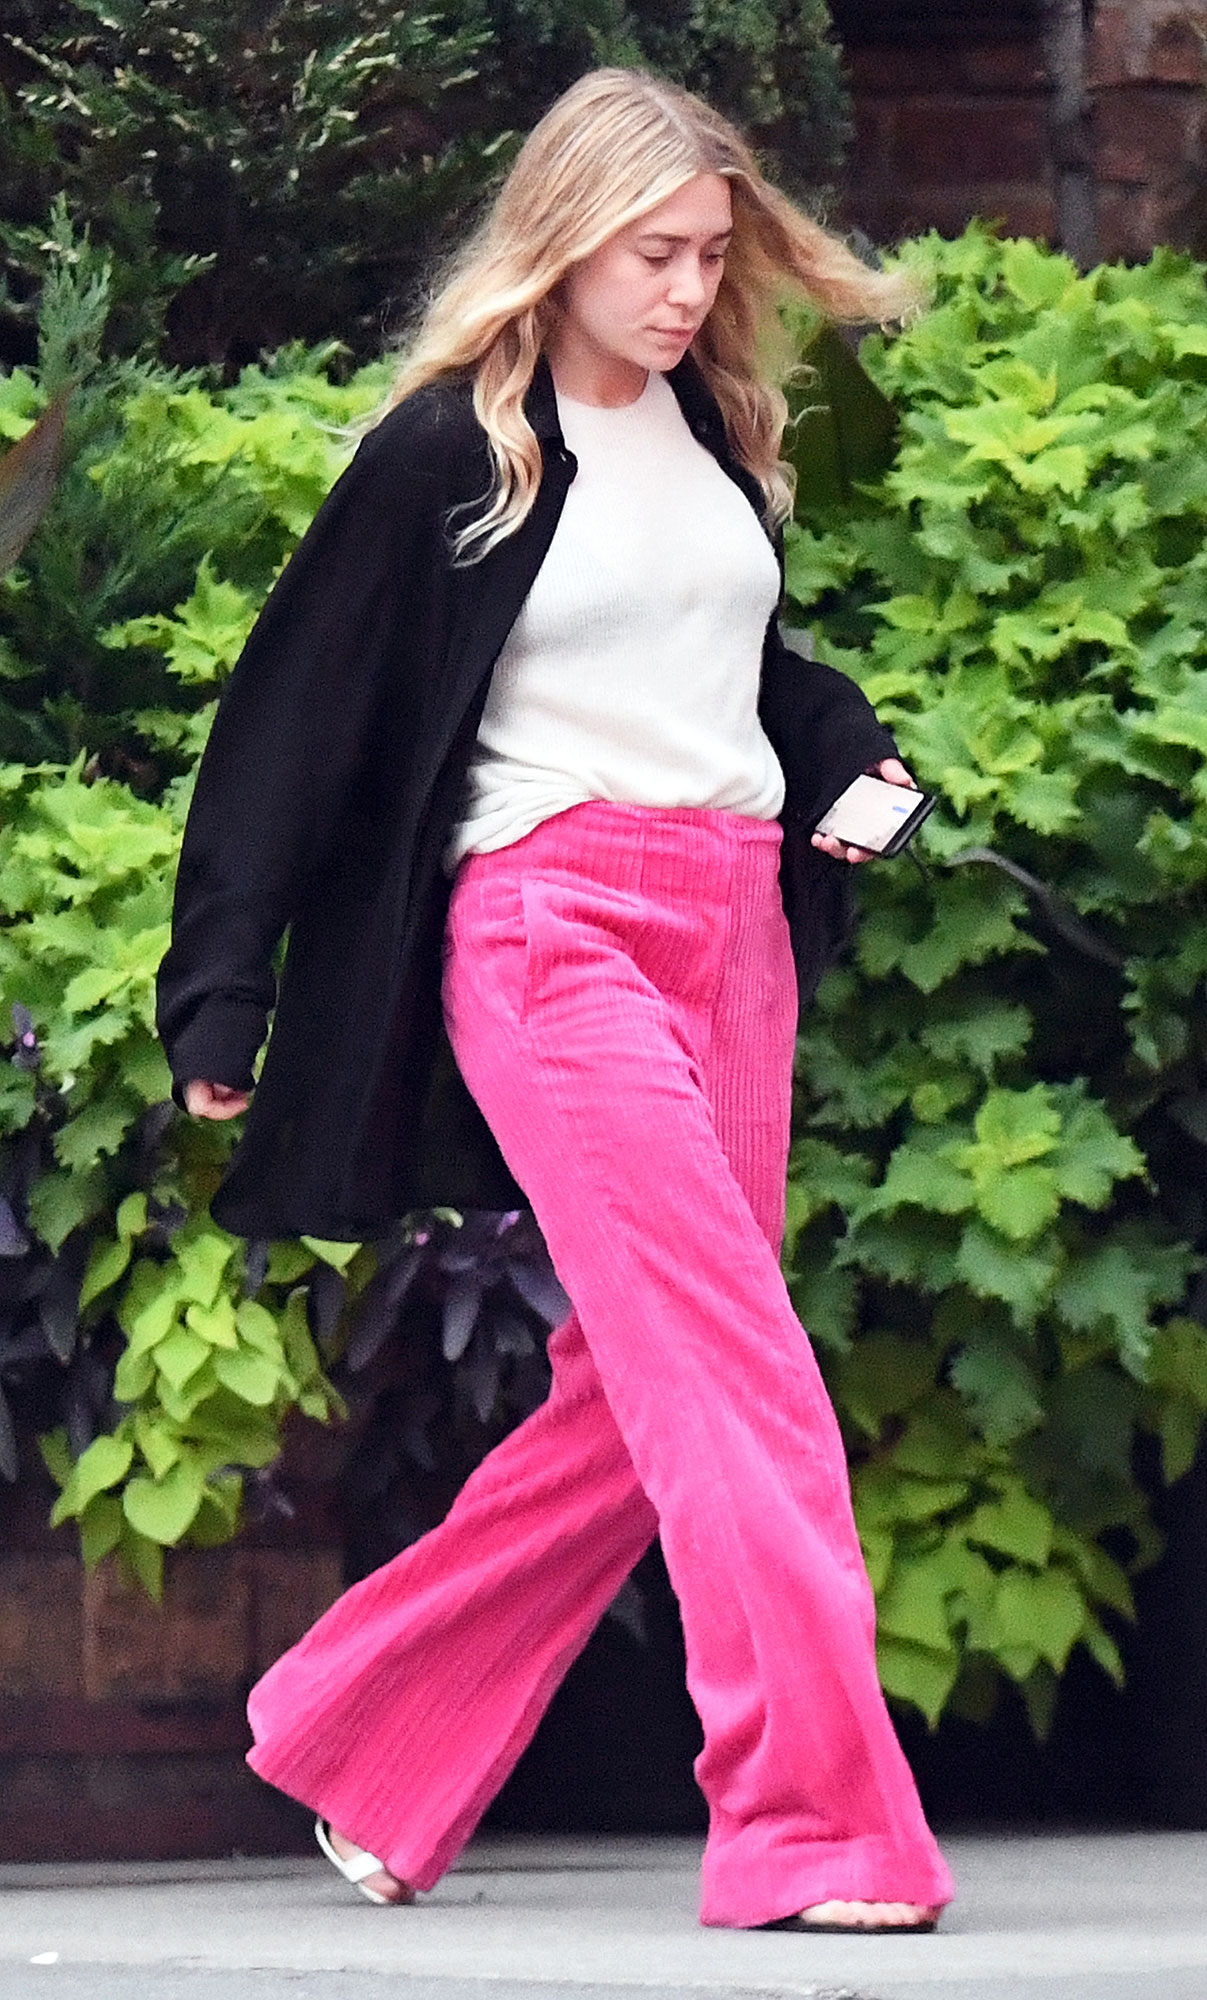 EXCLUSIVE: Ashley Olsen Spotted leaving her Hotel wearing a pink pants